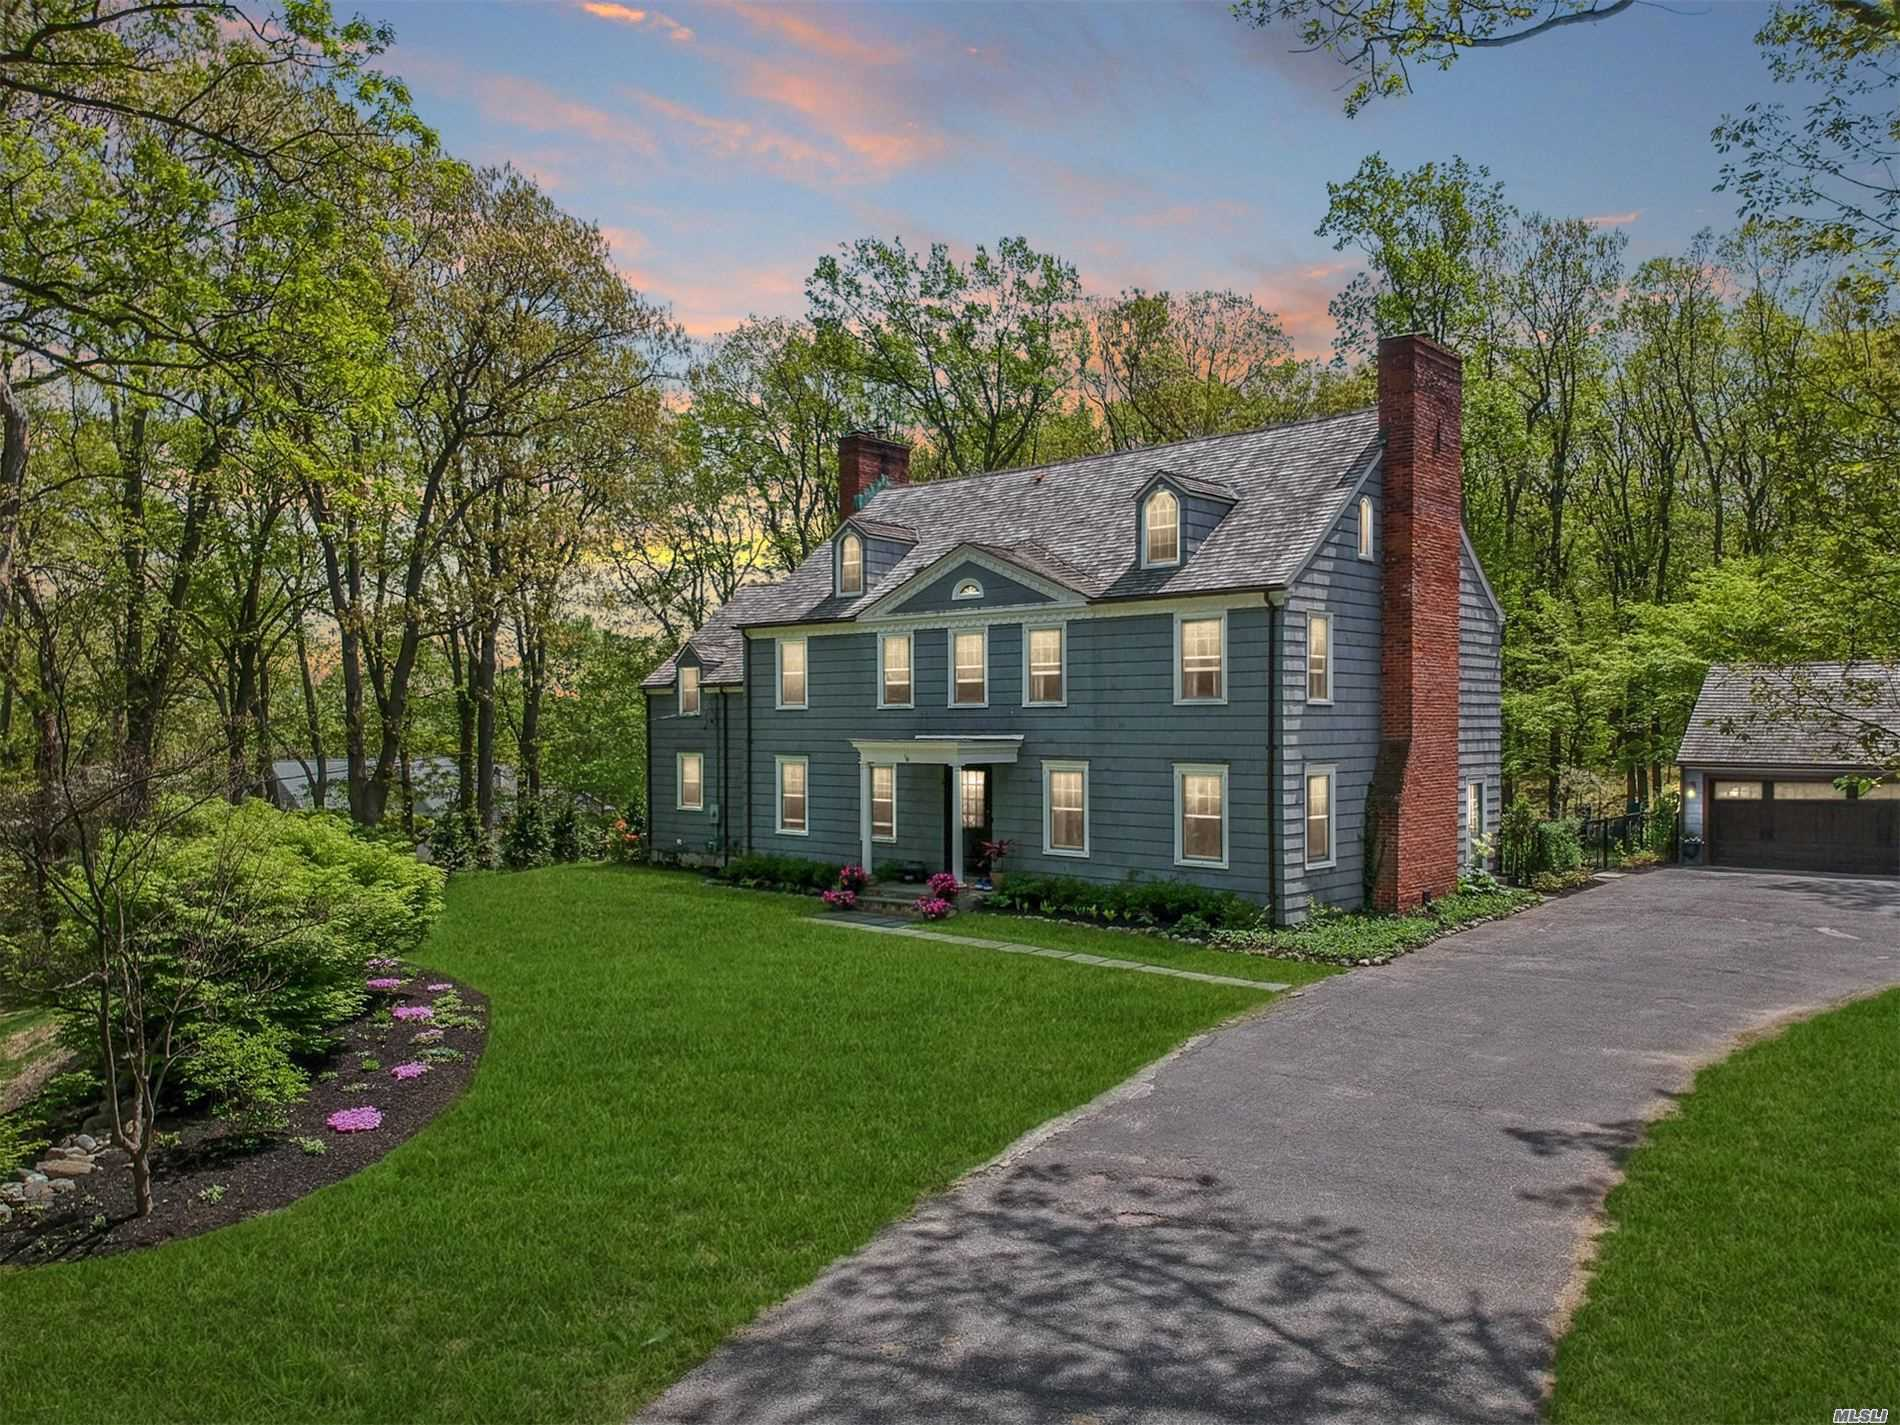 Seller offering $15K tax credit to buyer at closing. Historic Charm Abounds In This Meticulous And Timeless Restoration Of A Traditional Colonial Classic. Formerly Part Of The Stehli Estate, This Home Was Moved To Its Current Locale In The 1960'S With A New Foundation. Everything Renovated In The Last 5 Years, Kitchen Reno In 2017. Plenty Of Space, Traditional Layout, A/G Oil Tank, Fully Fenced. Tax Grievance Filed In 2018; expected answer August '19.